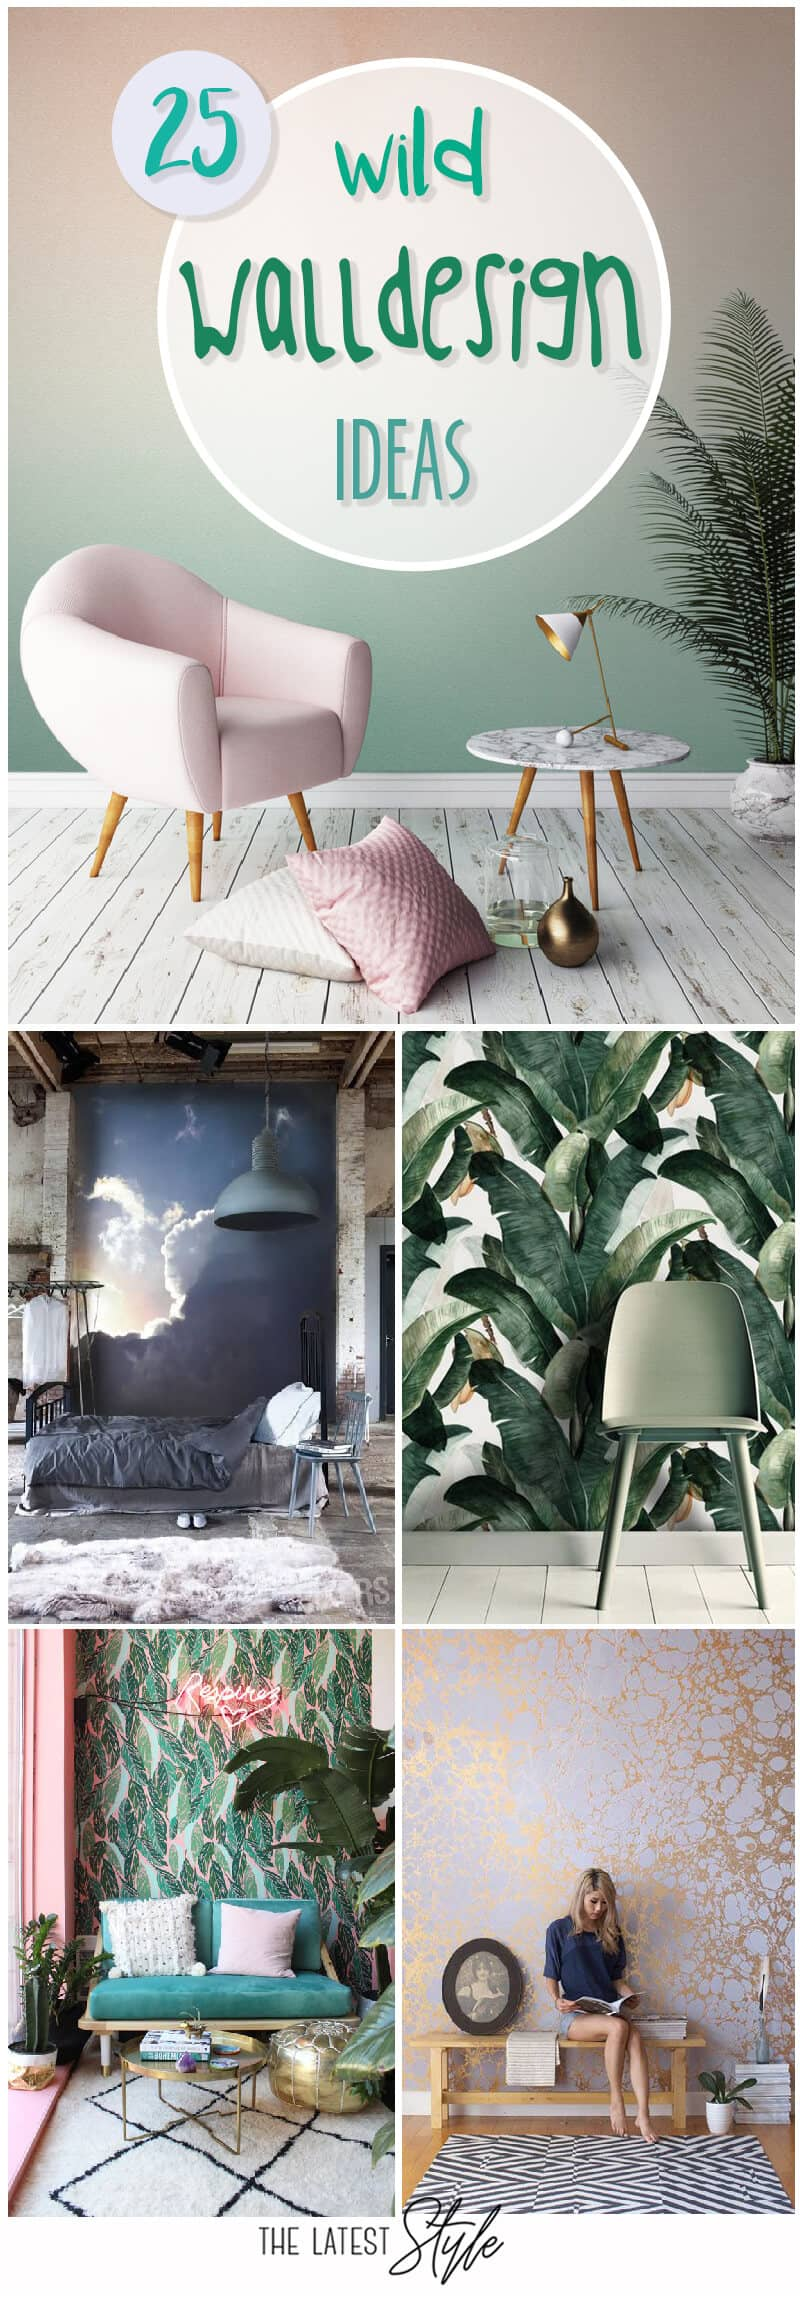 25 Wild Wall Design Ideas To Up Your Interior Design Game